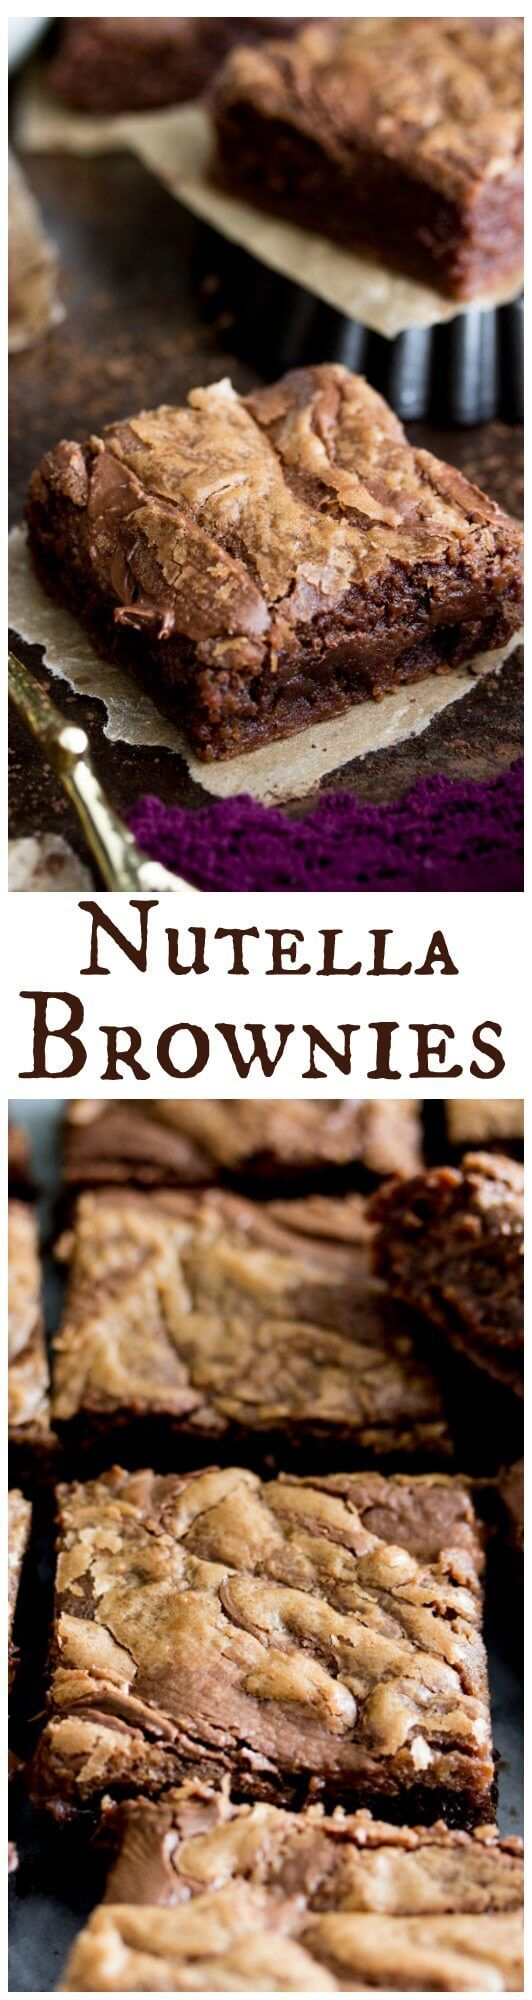 Nutella Brownies -- rich Nutella flavor baked into bars || Sugar Spun Run